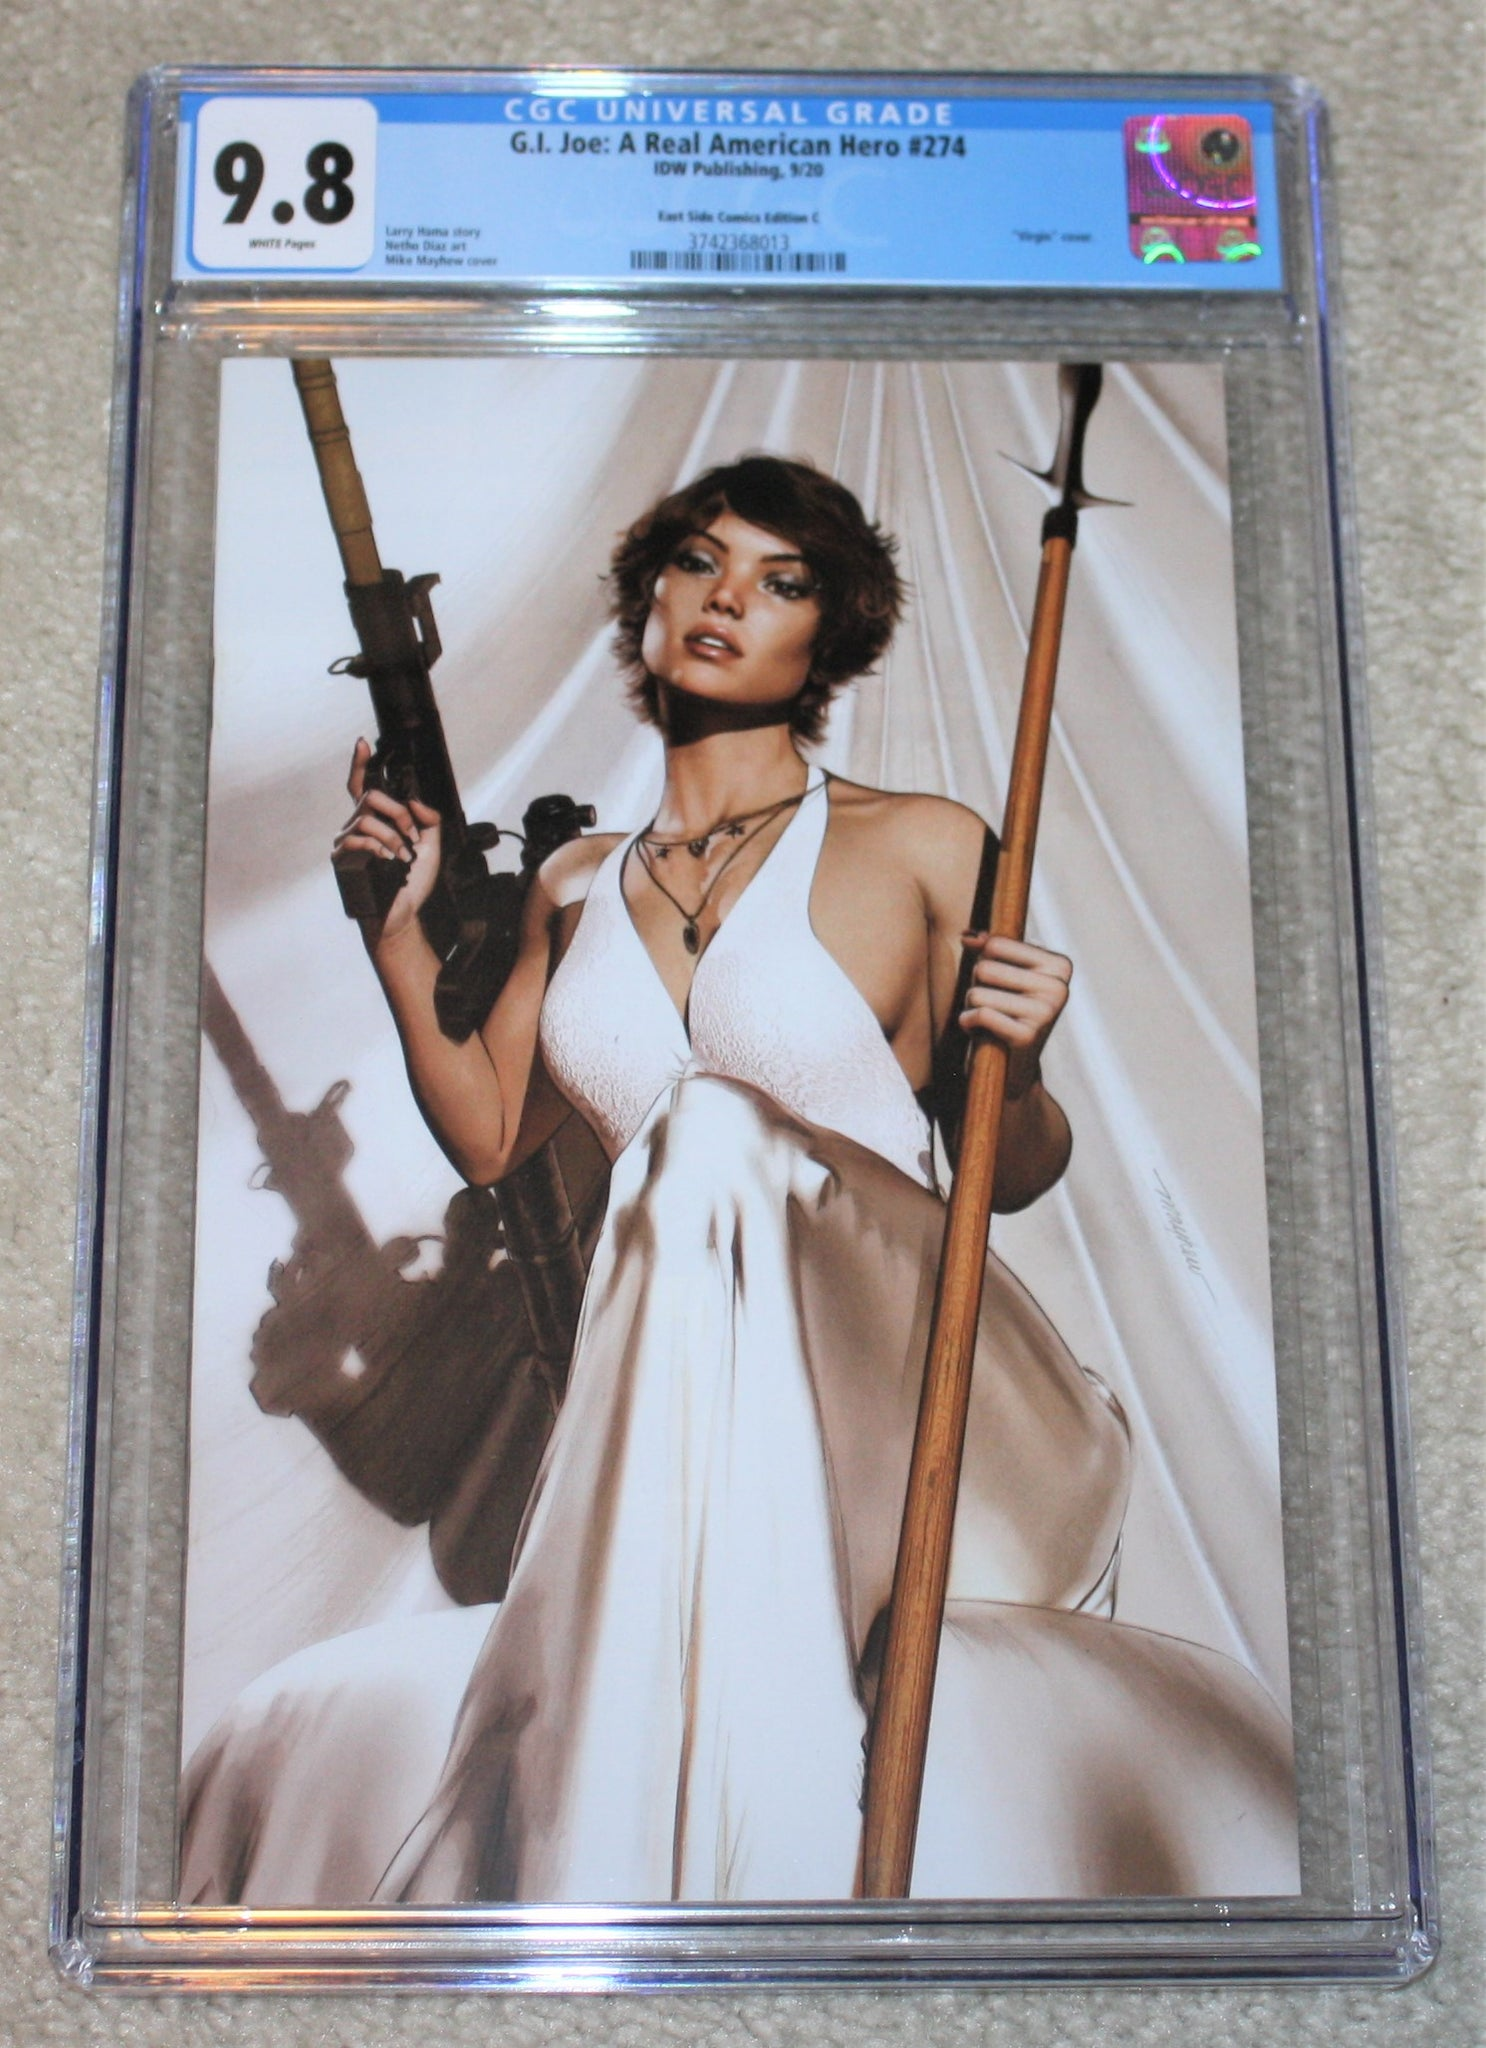 G.I. JOE 274 Mike Mayhew Kirill Repin Scarlett Lady Jaye Baroness Snake-Eyes Storm Shadow IDW Virgin Variant DC Comics Marvel Comics X-Men Batman Harley Quinn  East Side Comics Virgin Exclusive cgc signed ss comics